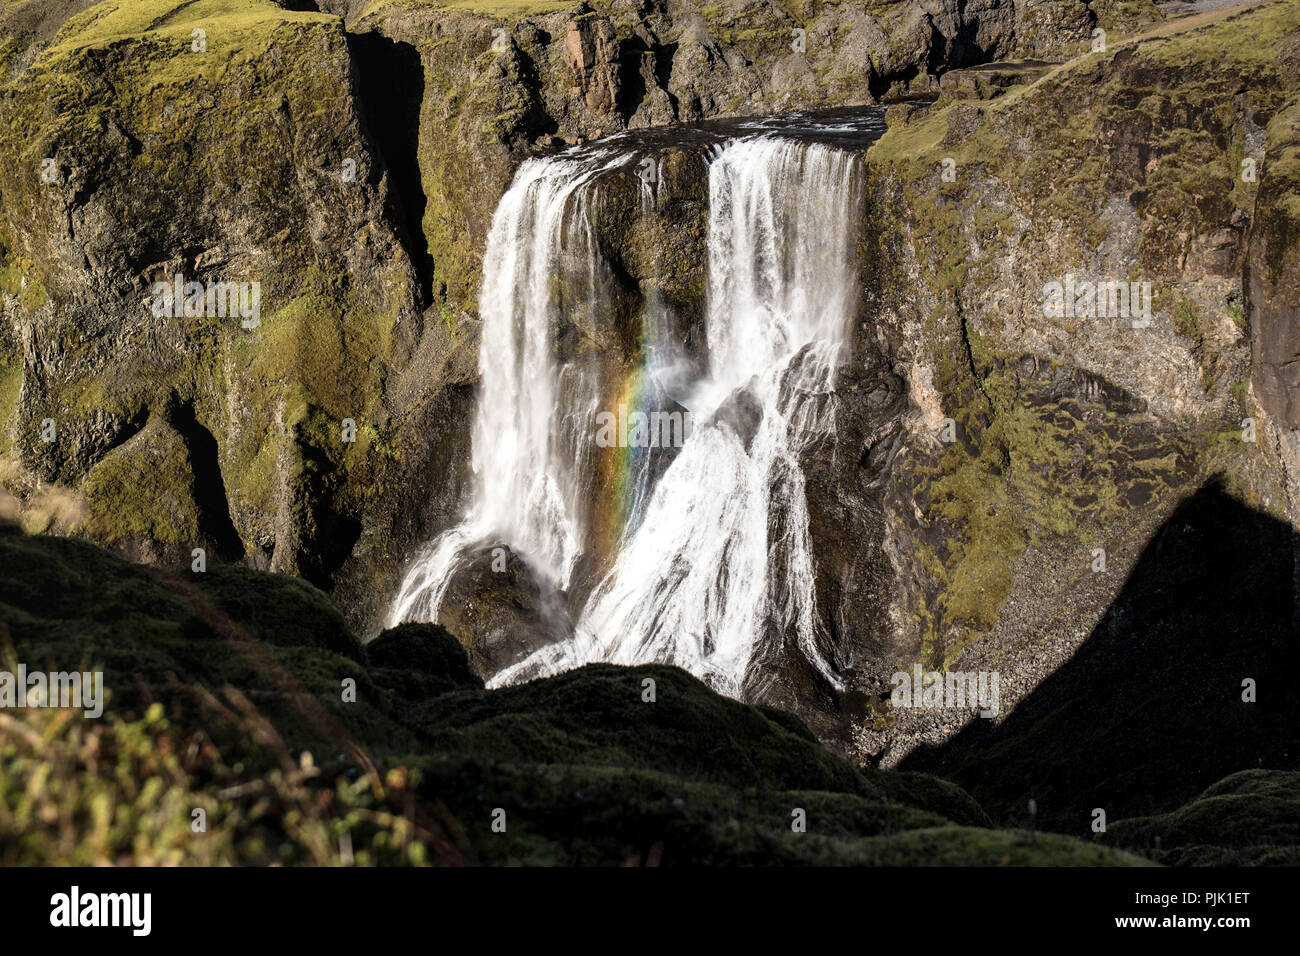 A mighty waterfall with rainbow in Iceland - Stock Image